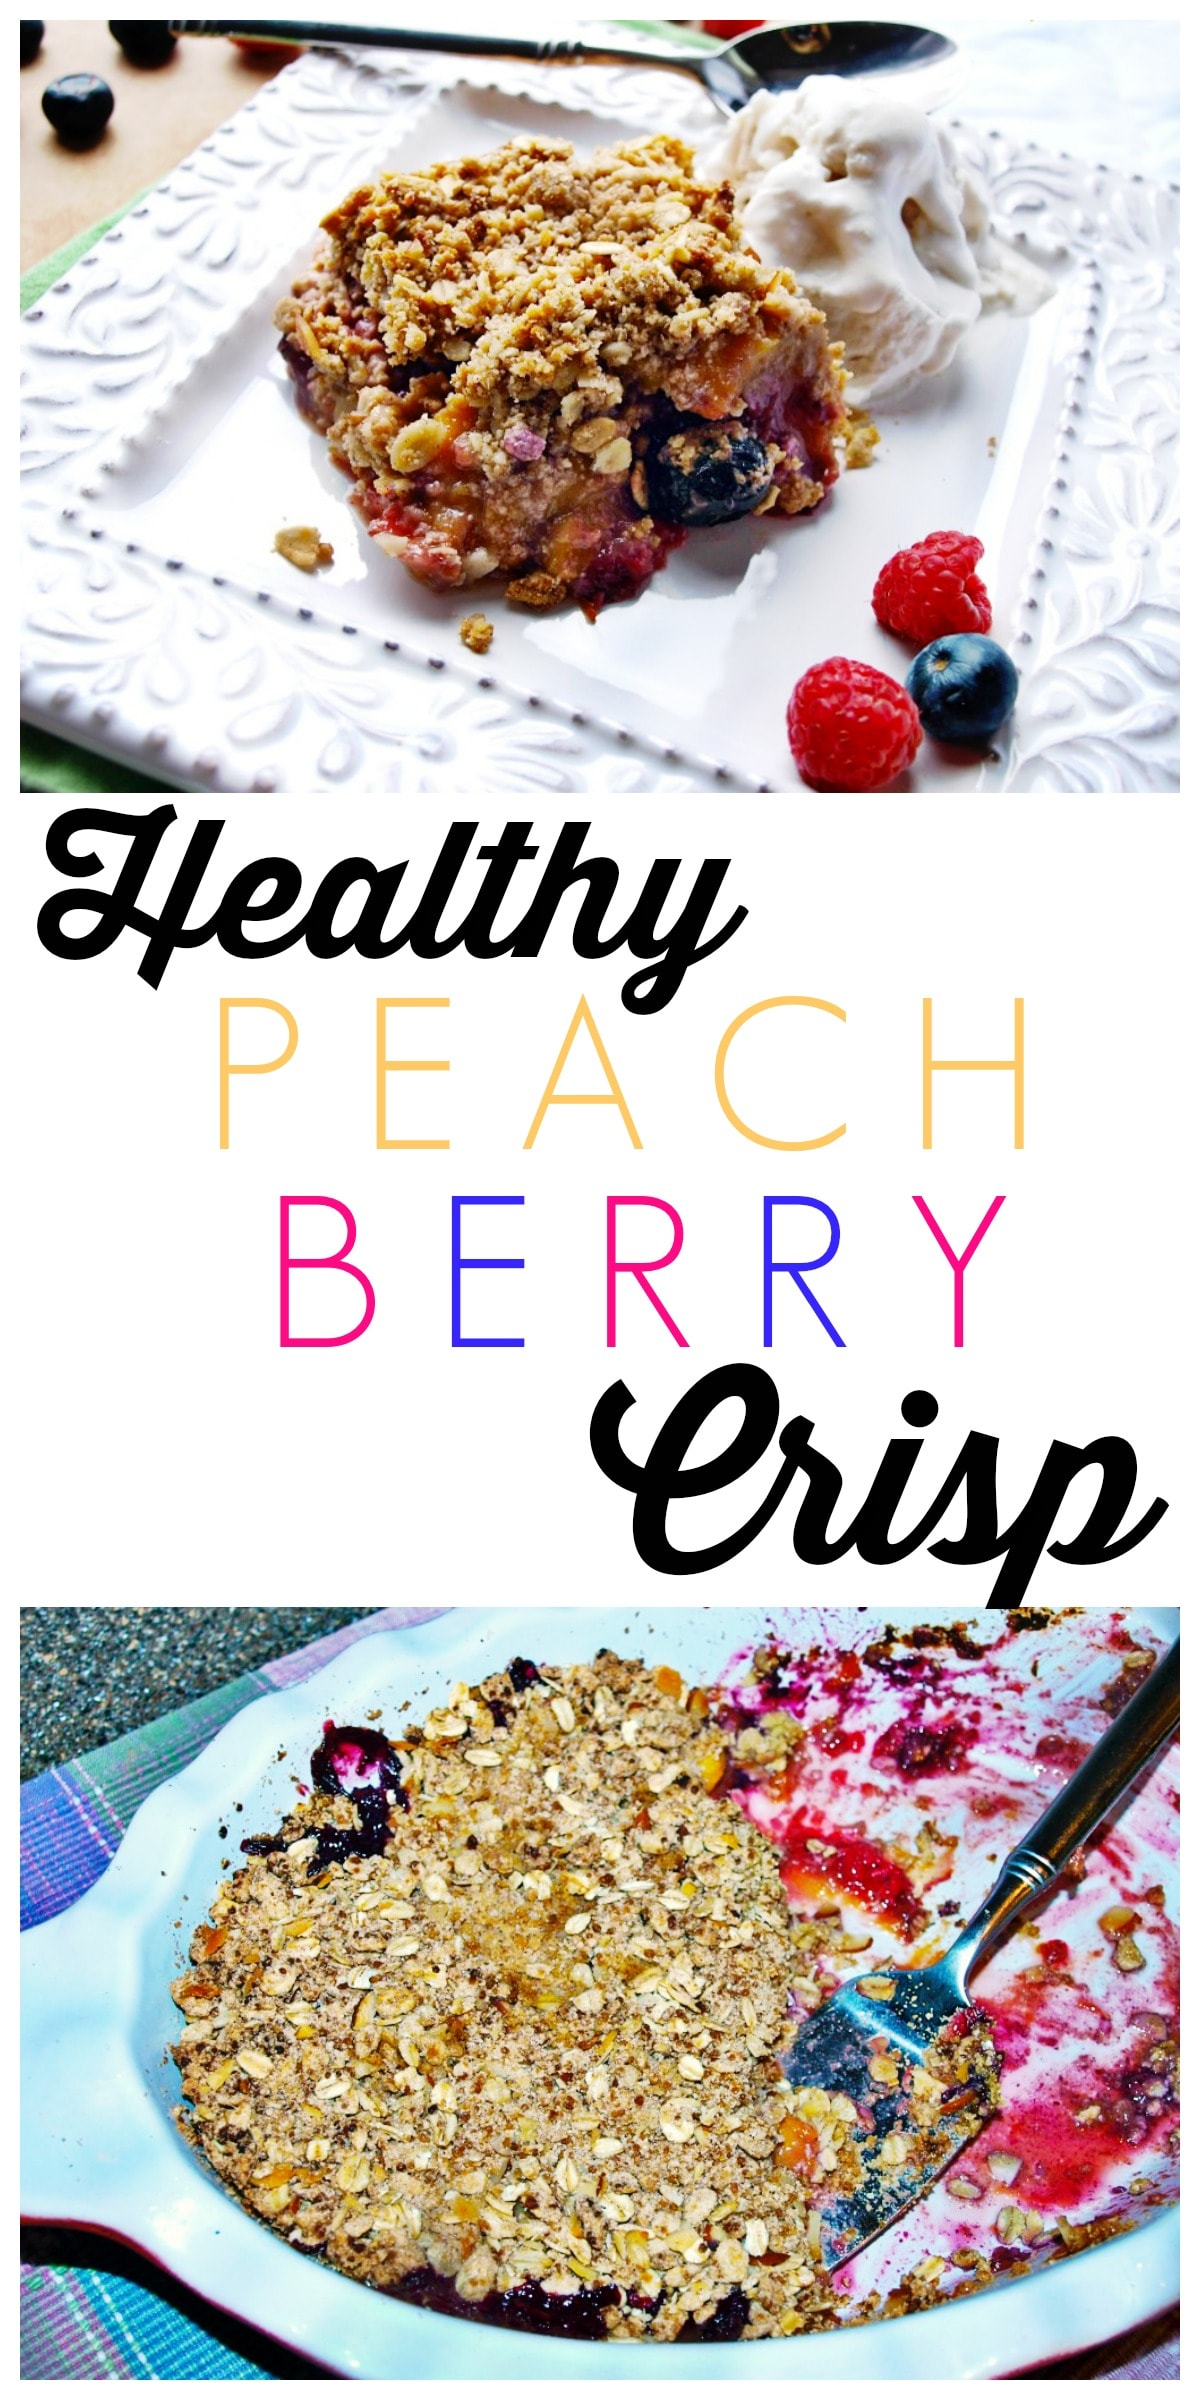 This Healthy Peach Berry Crisp is the ultimate summer dessert! It's much lighter than a normal crisp and made without refined sugar. But shhh! you don't have to tell anyone that. :)